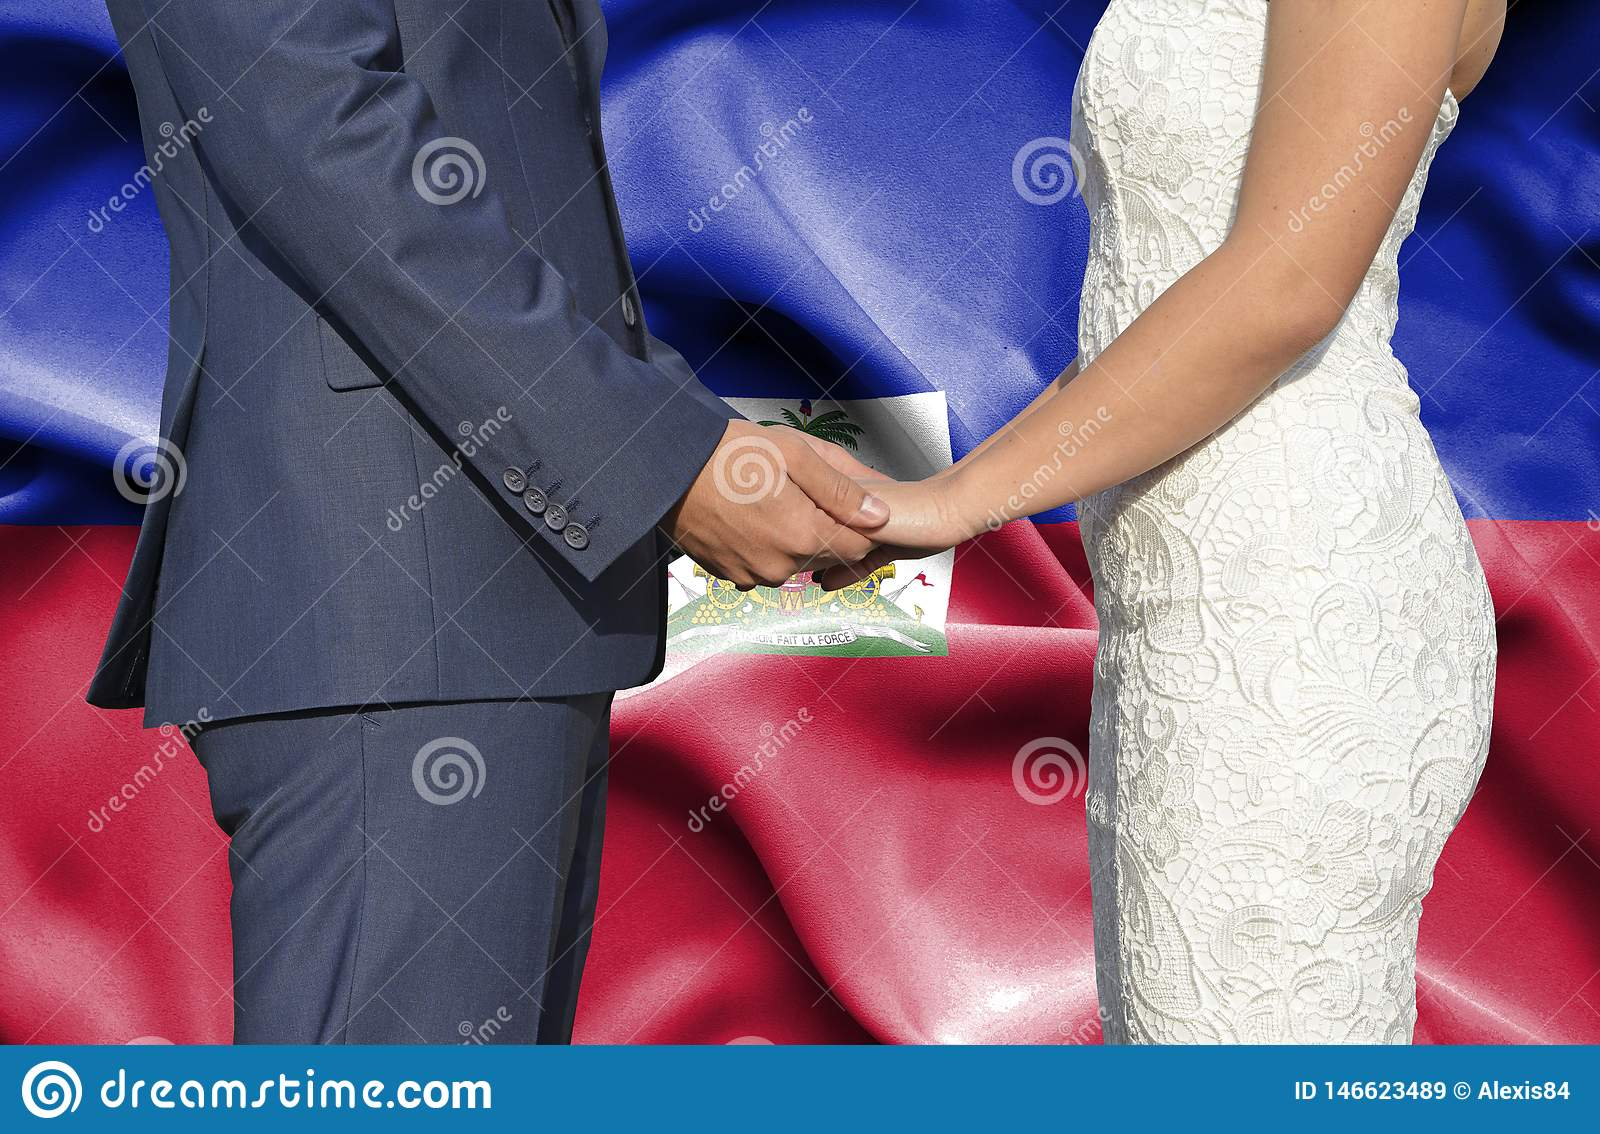 Husband and Wife holding hands - Conceptual photograph of marriage in Haiti